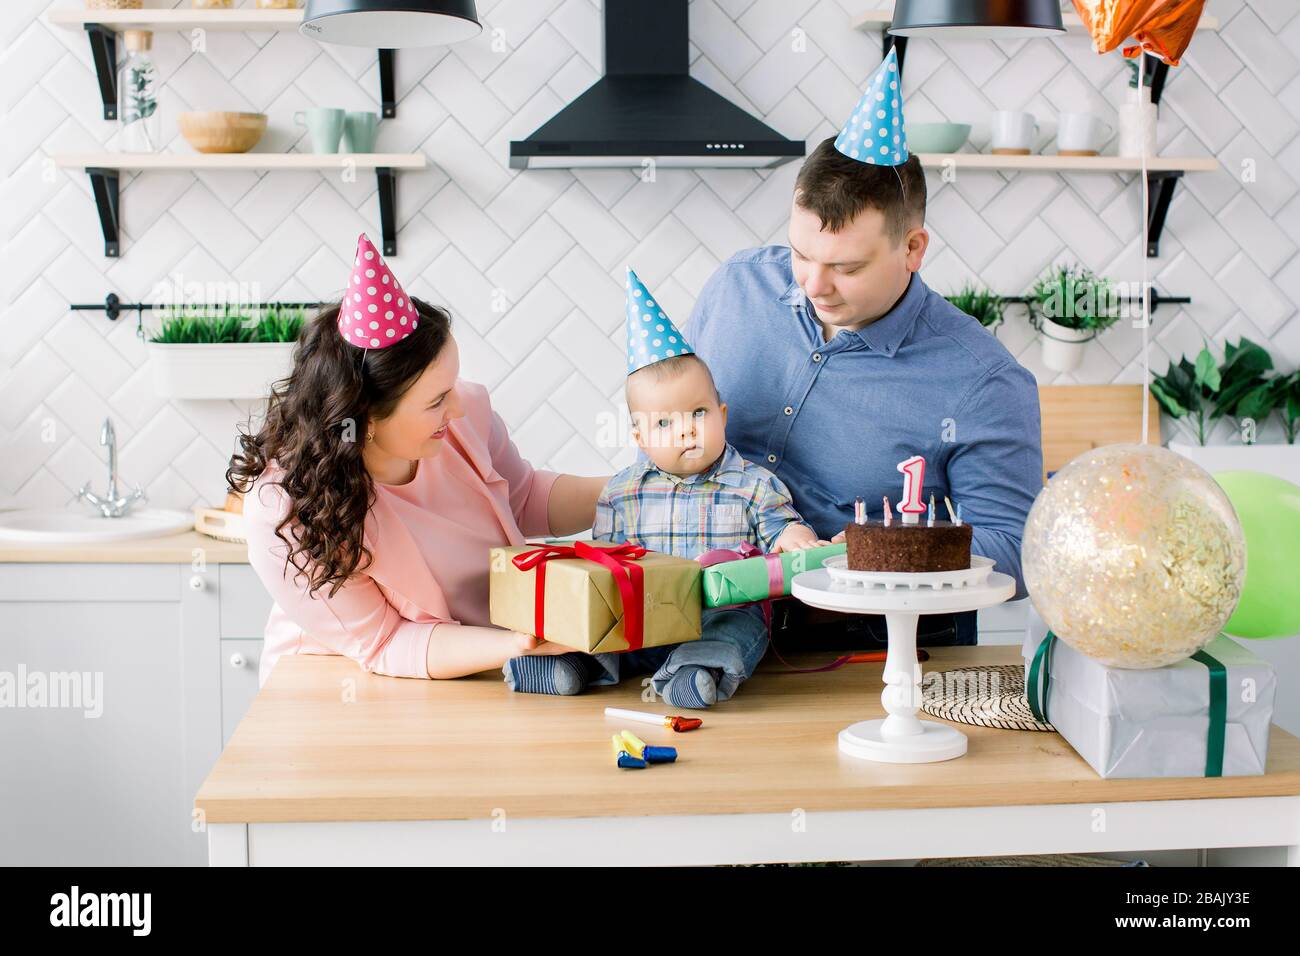 Mother And Father In Birthday Hats Celebrating First Birthday Of Baby Boy At Home Kitchen Happy Family Celebrating Birthday With A Cake Present Stock Photo Alamy